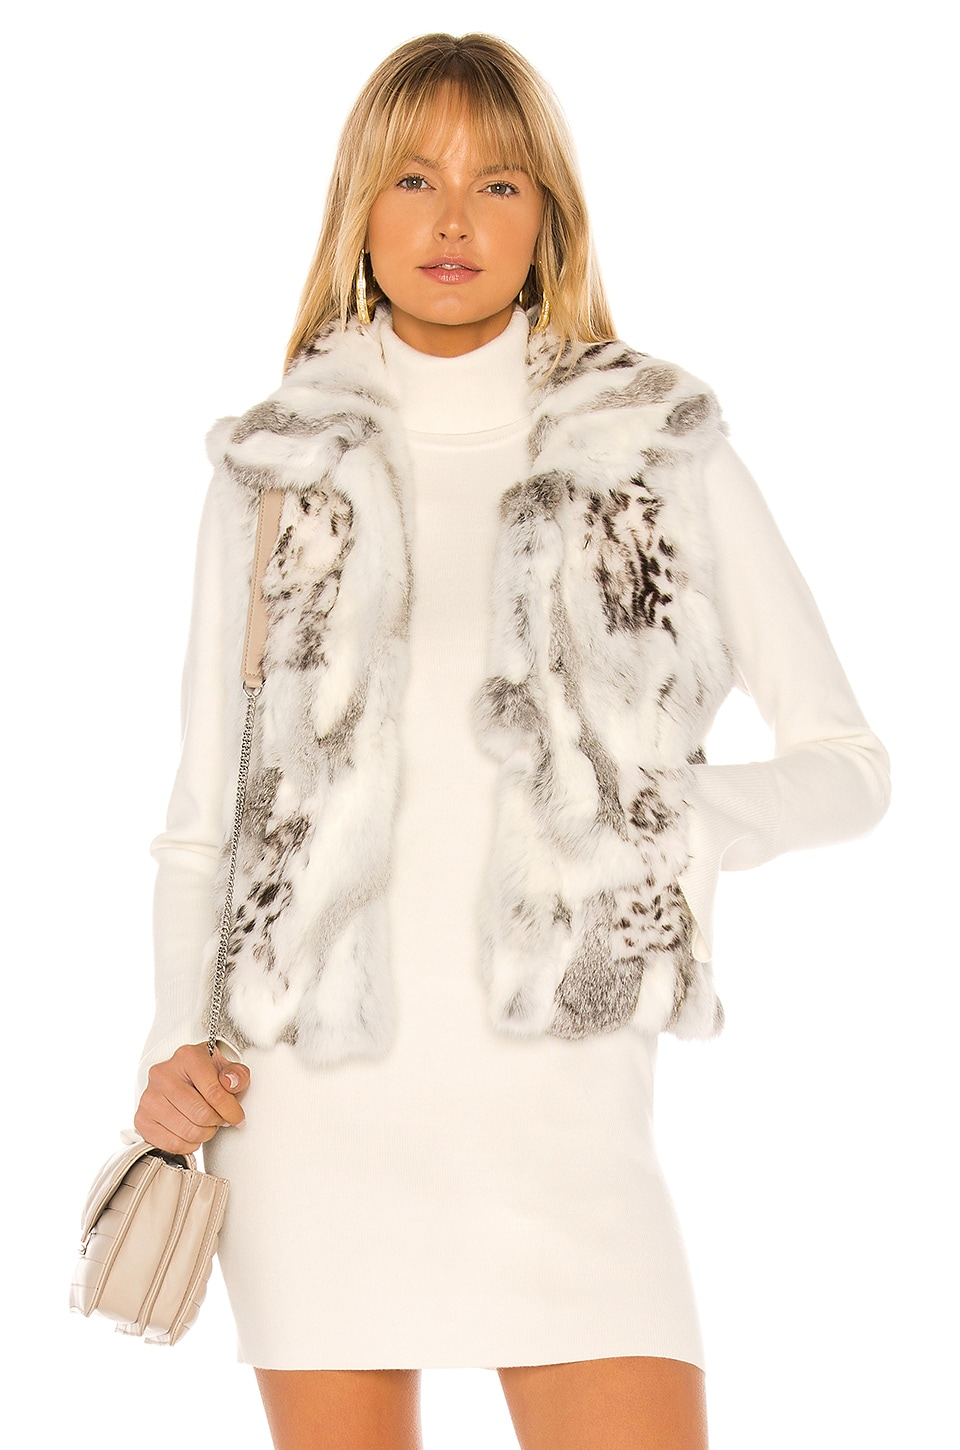 Adrienne Landau Printed Leopard Rabbit Fur Vest in Natural Grey